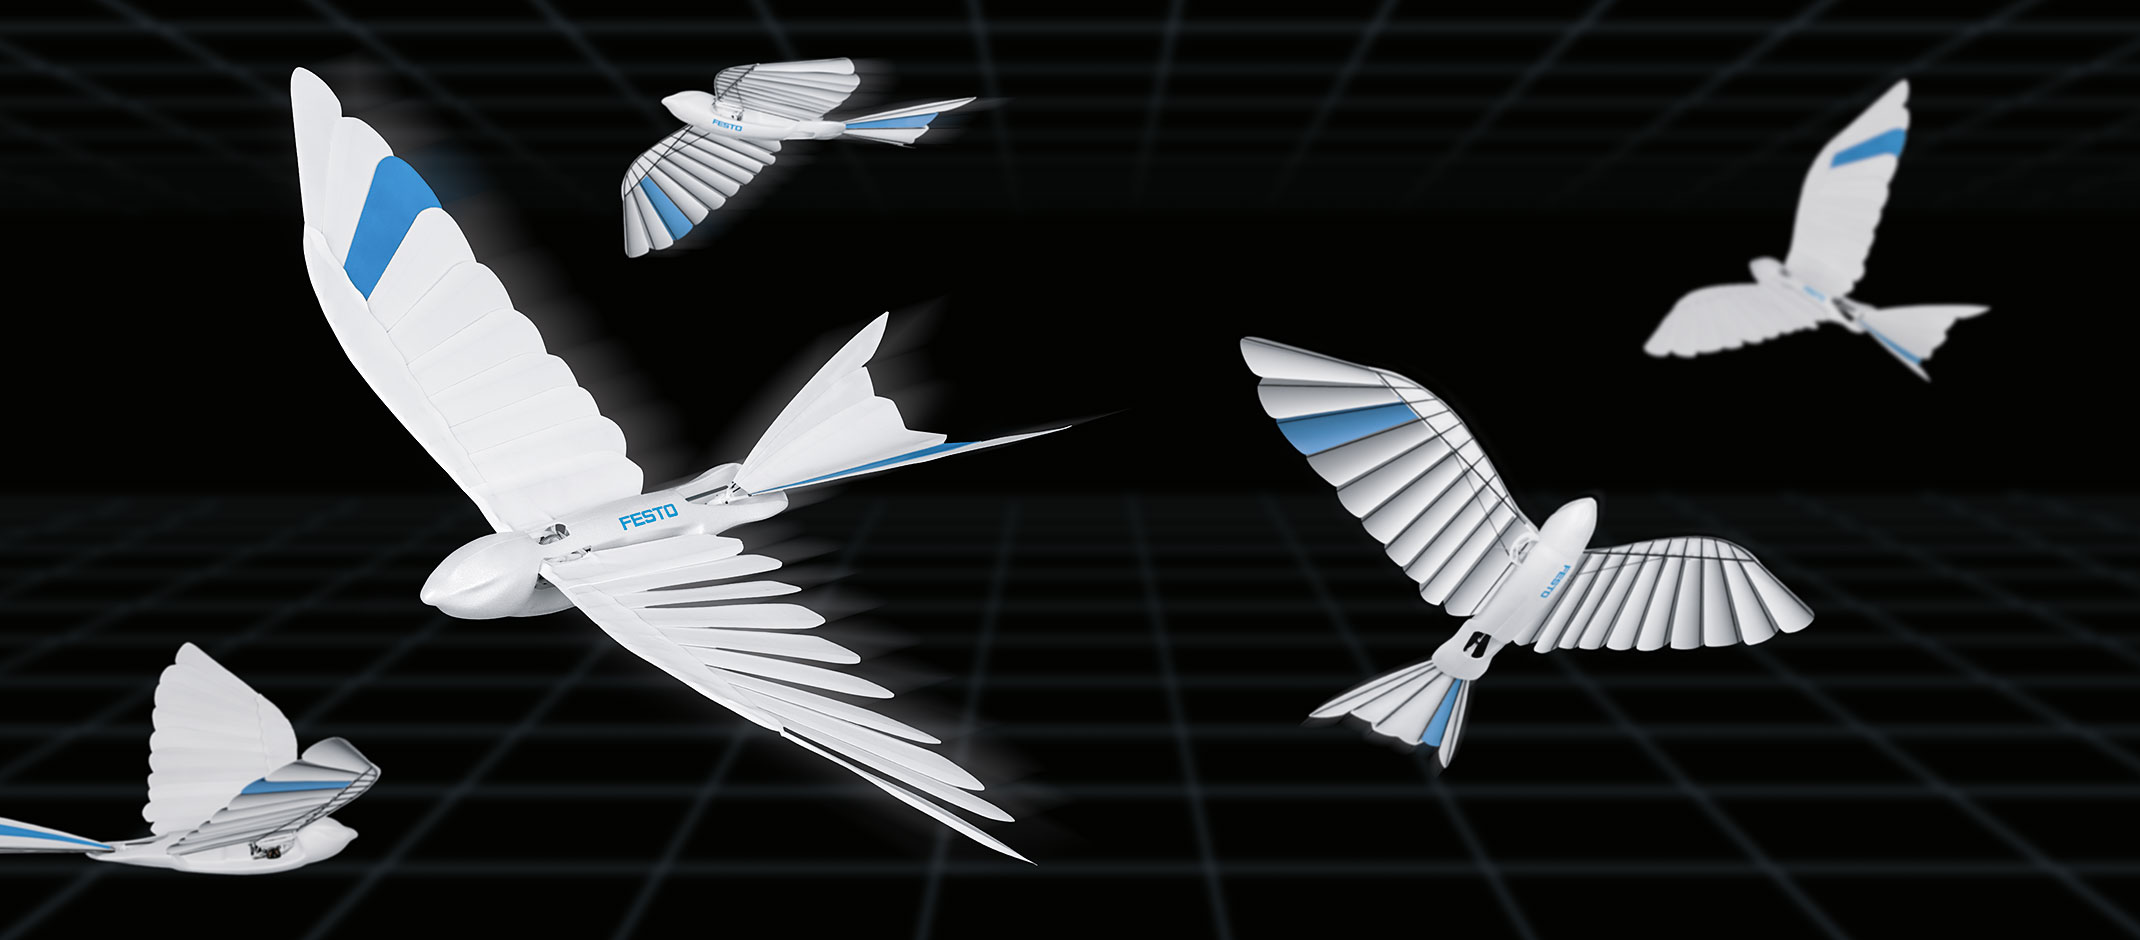 Festo's latest biomimetic robots are a flying feathered bird and ball-bottomed helper arm – TechCrunch